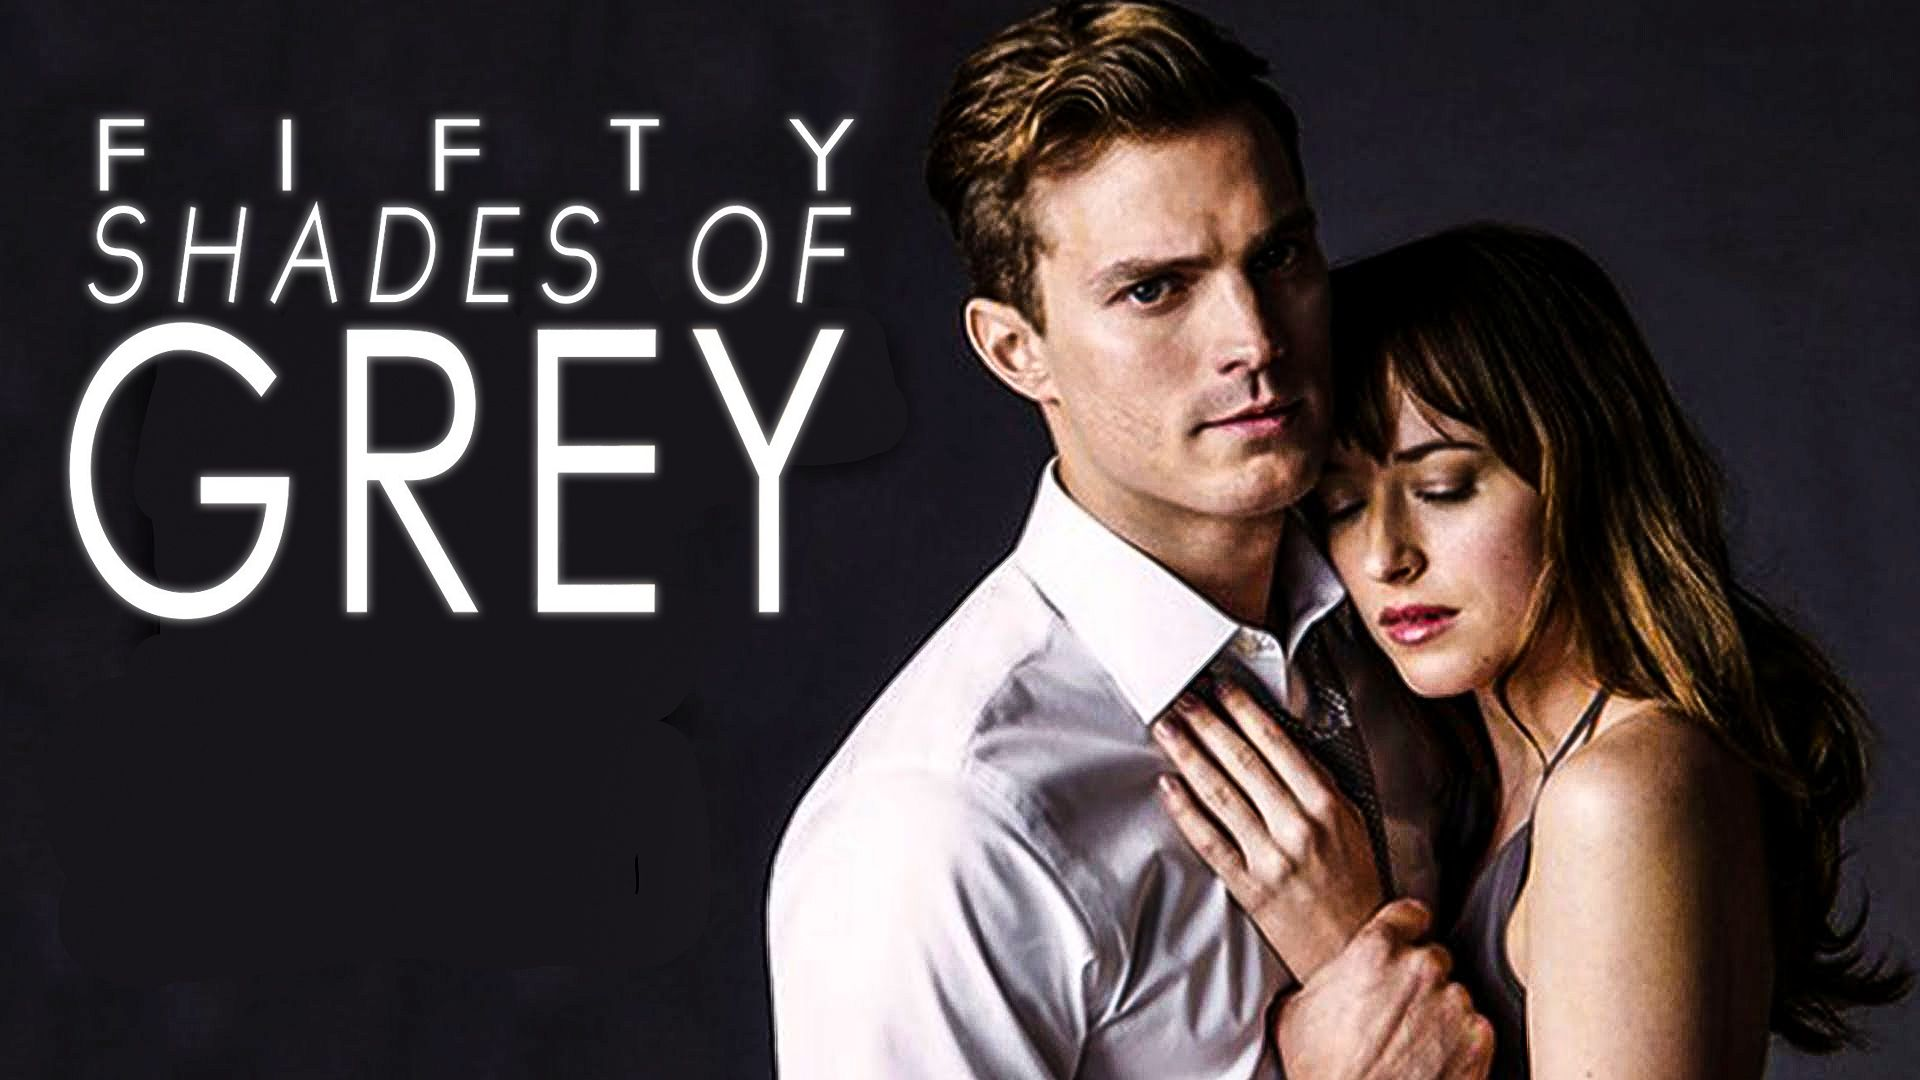 fifty shades of grey free online book pdf